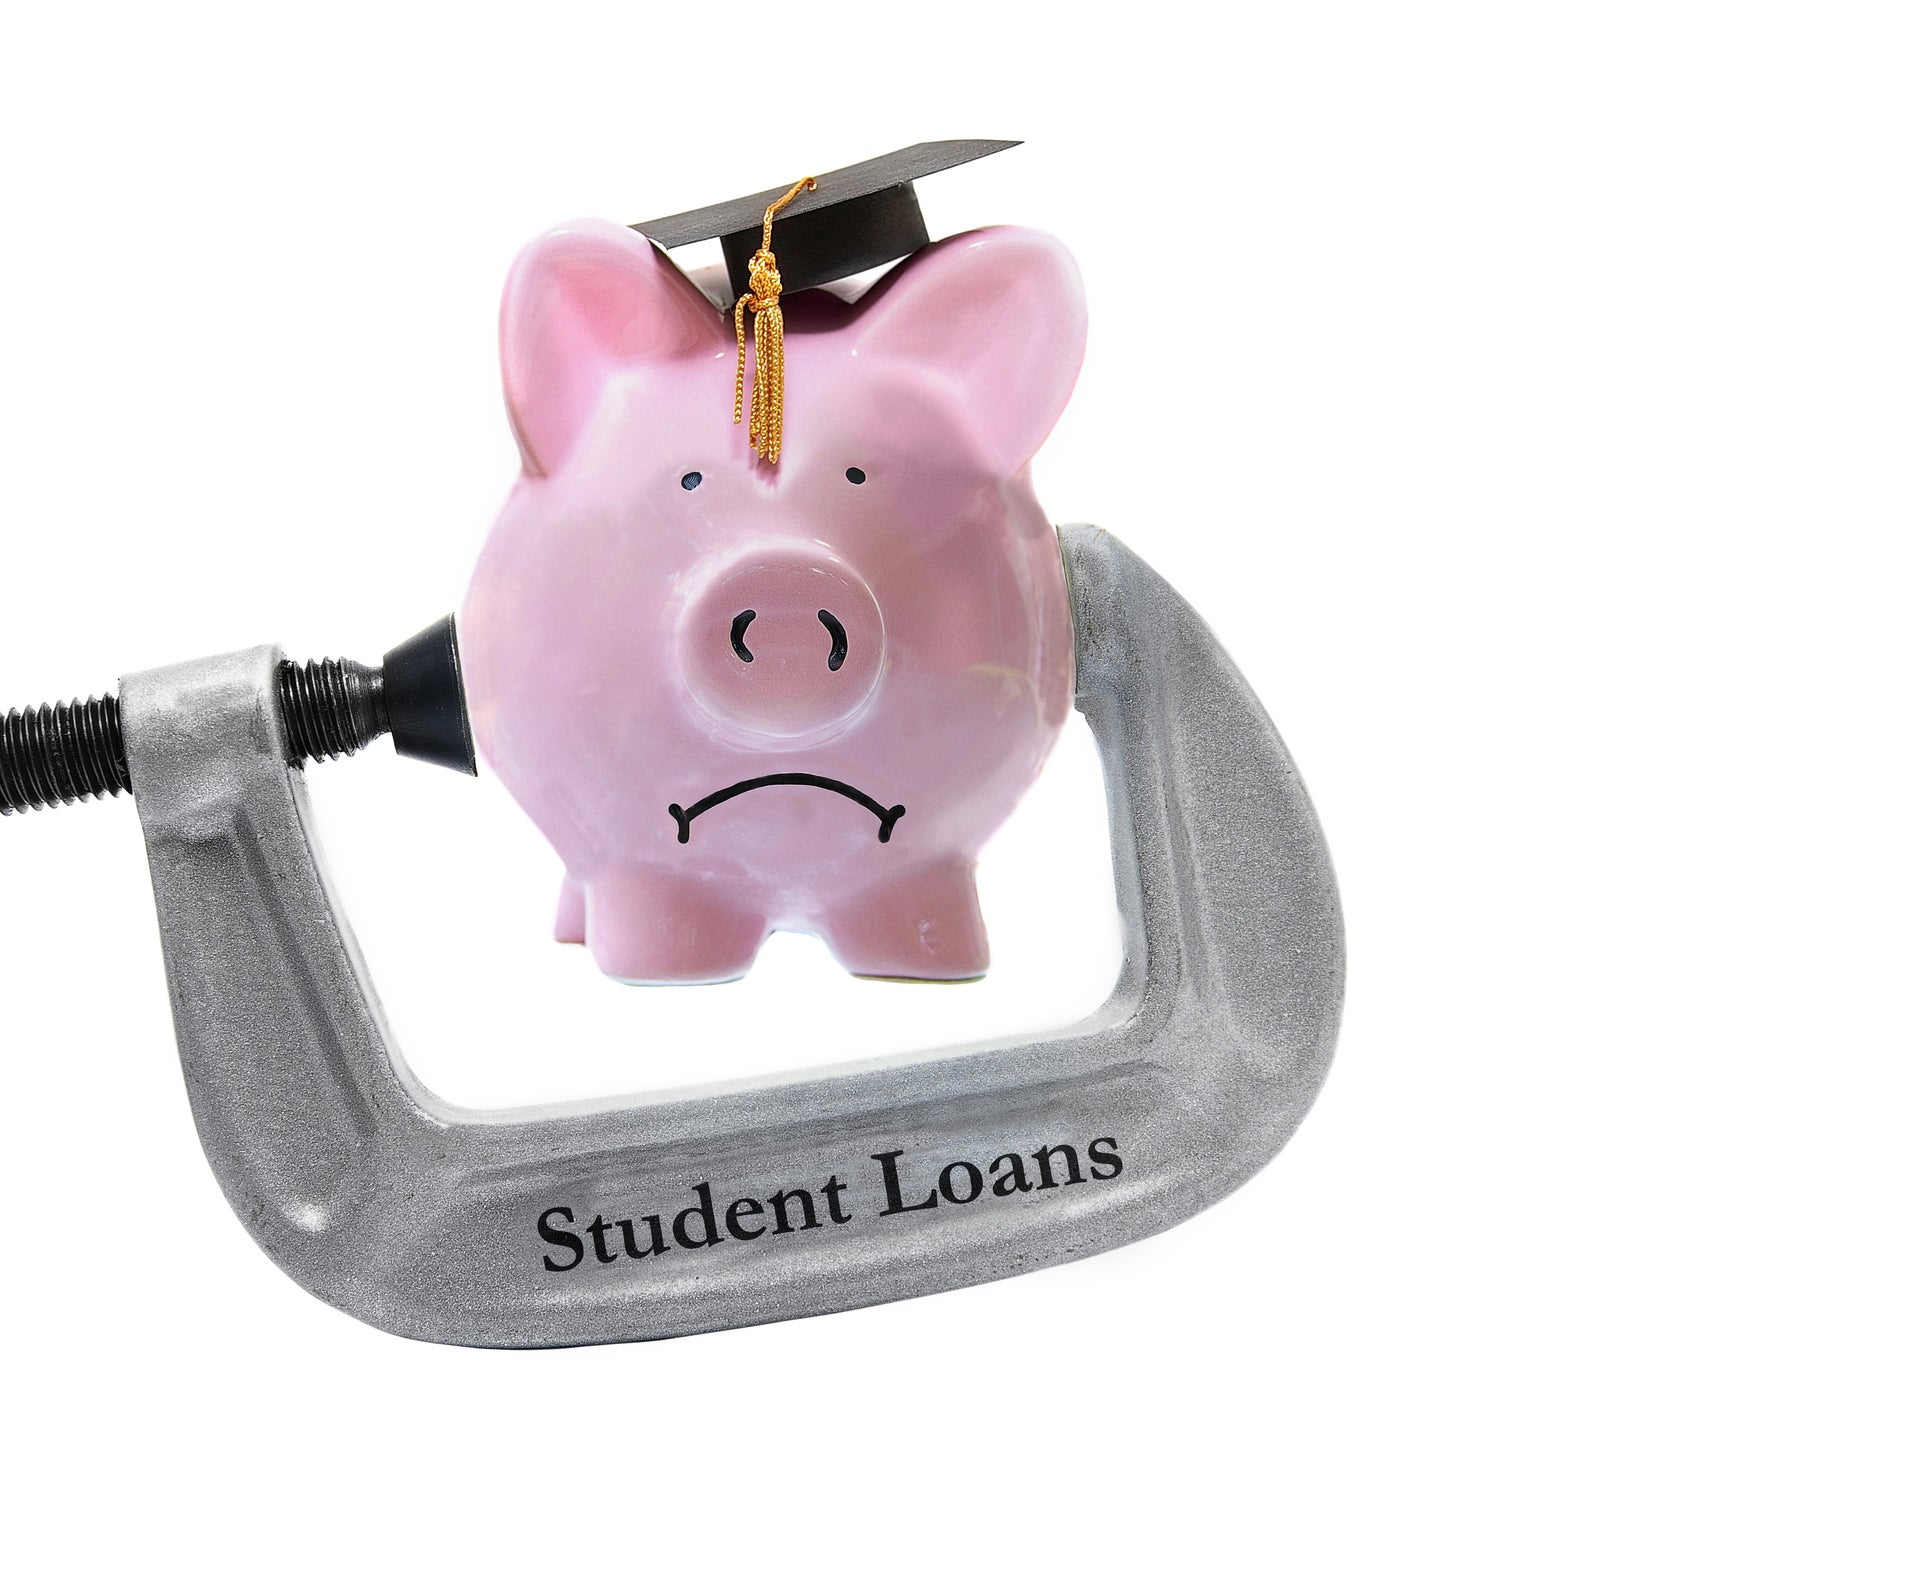 """A piggy bank wearing a graduation cap being squeezed by a vise labelled """"Student Loans""""."""